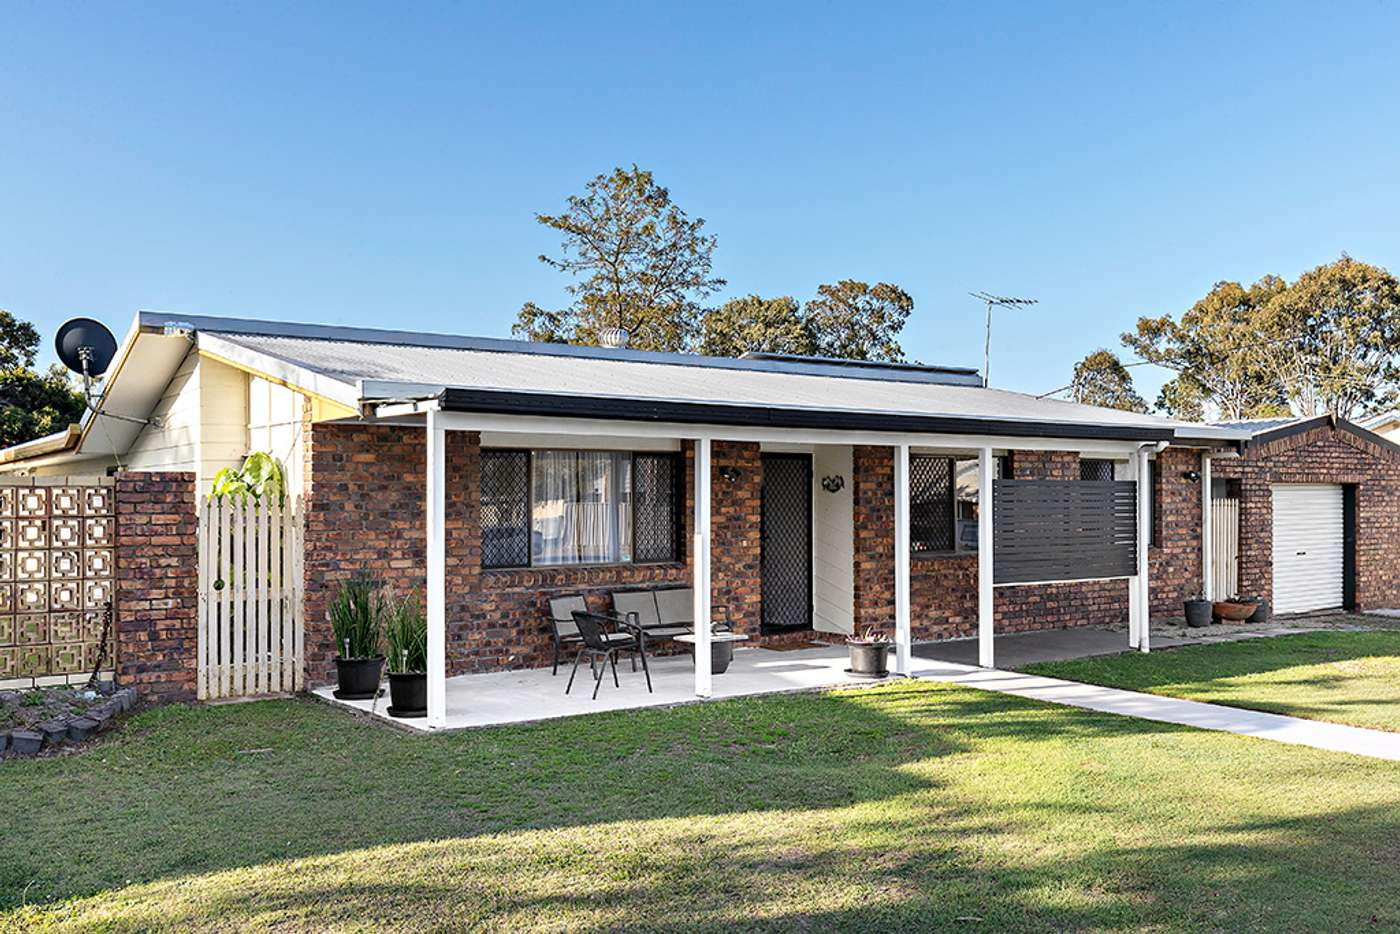 Main view of Homely house listing, 19 Fernando Street, Burpengary QLD 4505